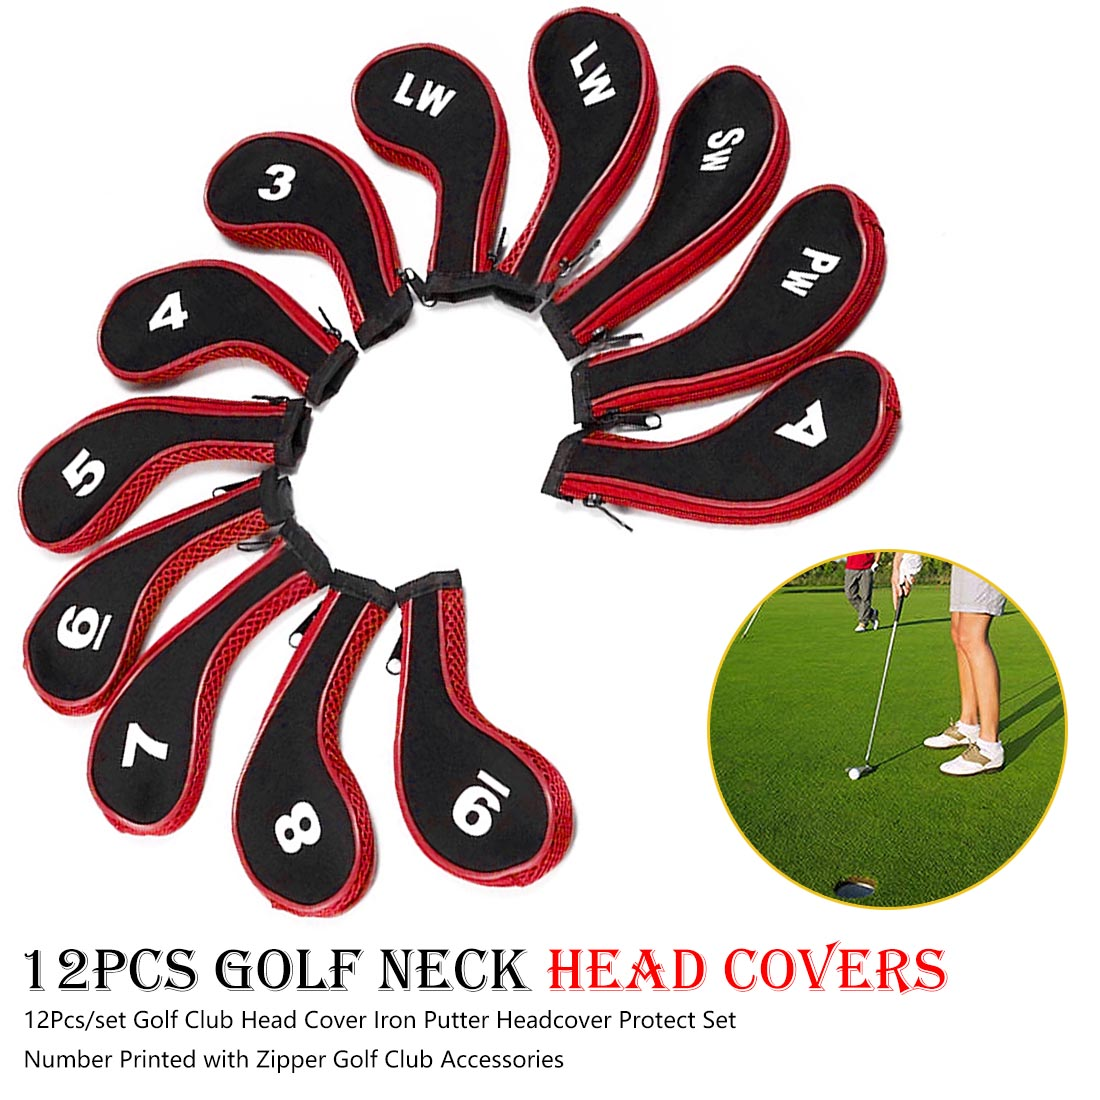 12Pcs/set Golf Club Head Cover Iron Putter Headcover Protect Set Number Printed With Zipper Golf Club Accessories